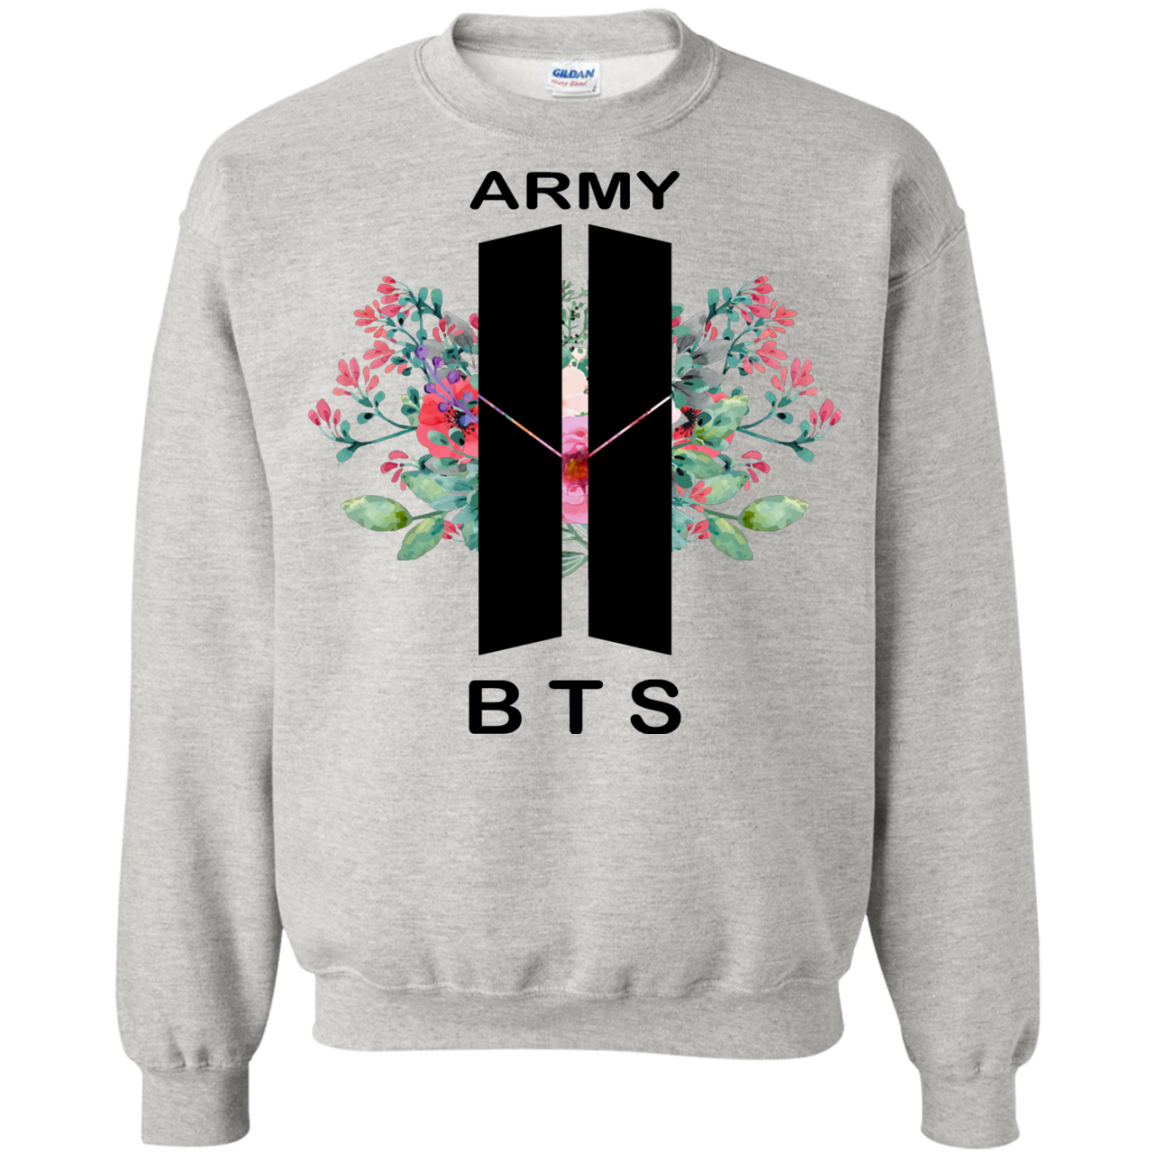 Army T shirts Army BTS Hoodies Sweatshirts TH